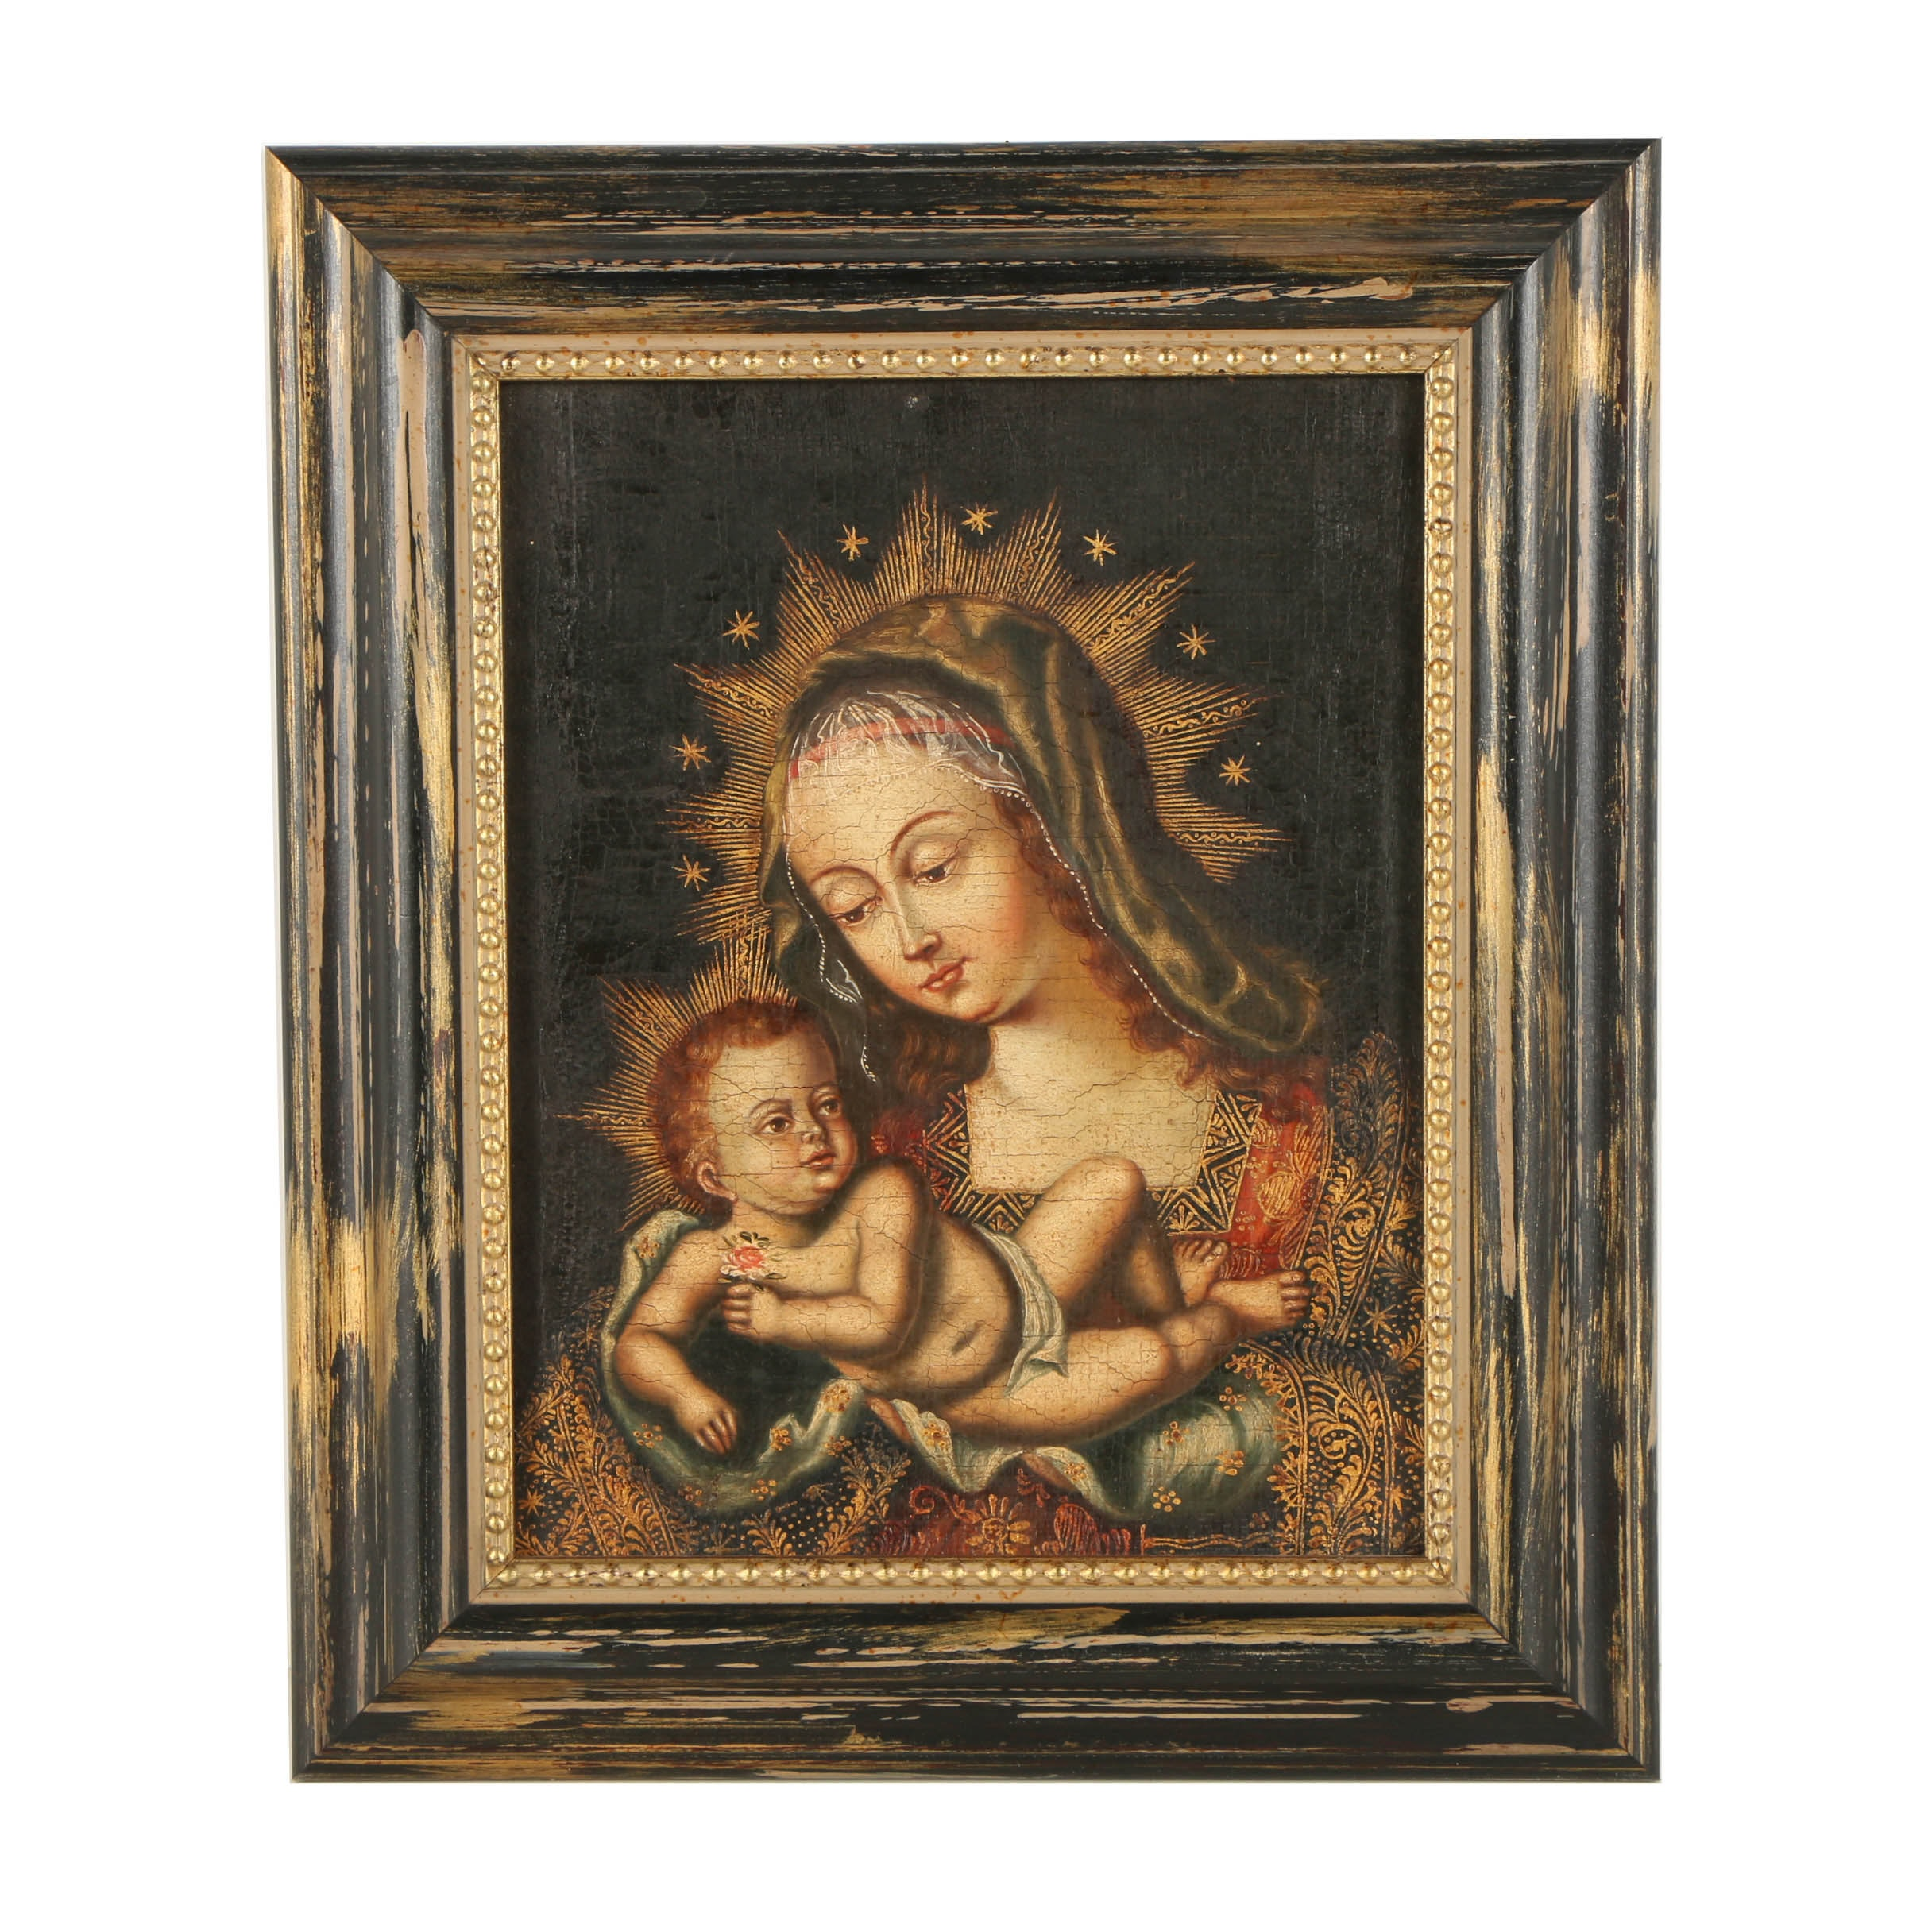 Acrylic and Oil Painting on Canvas of the Madonna and Child